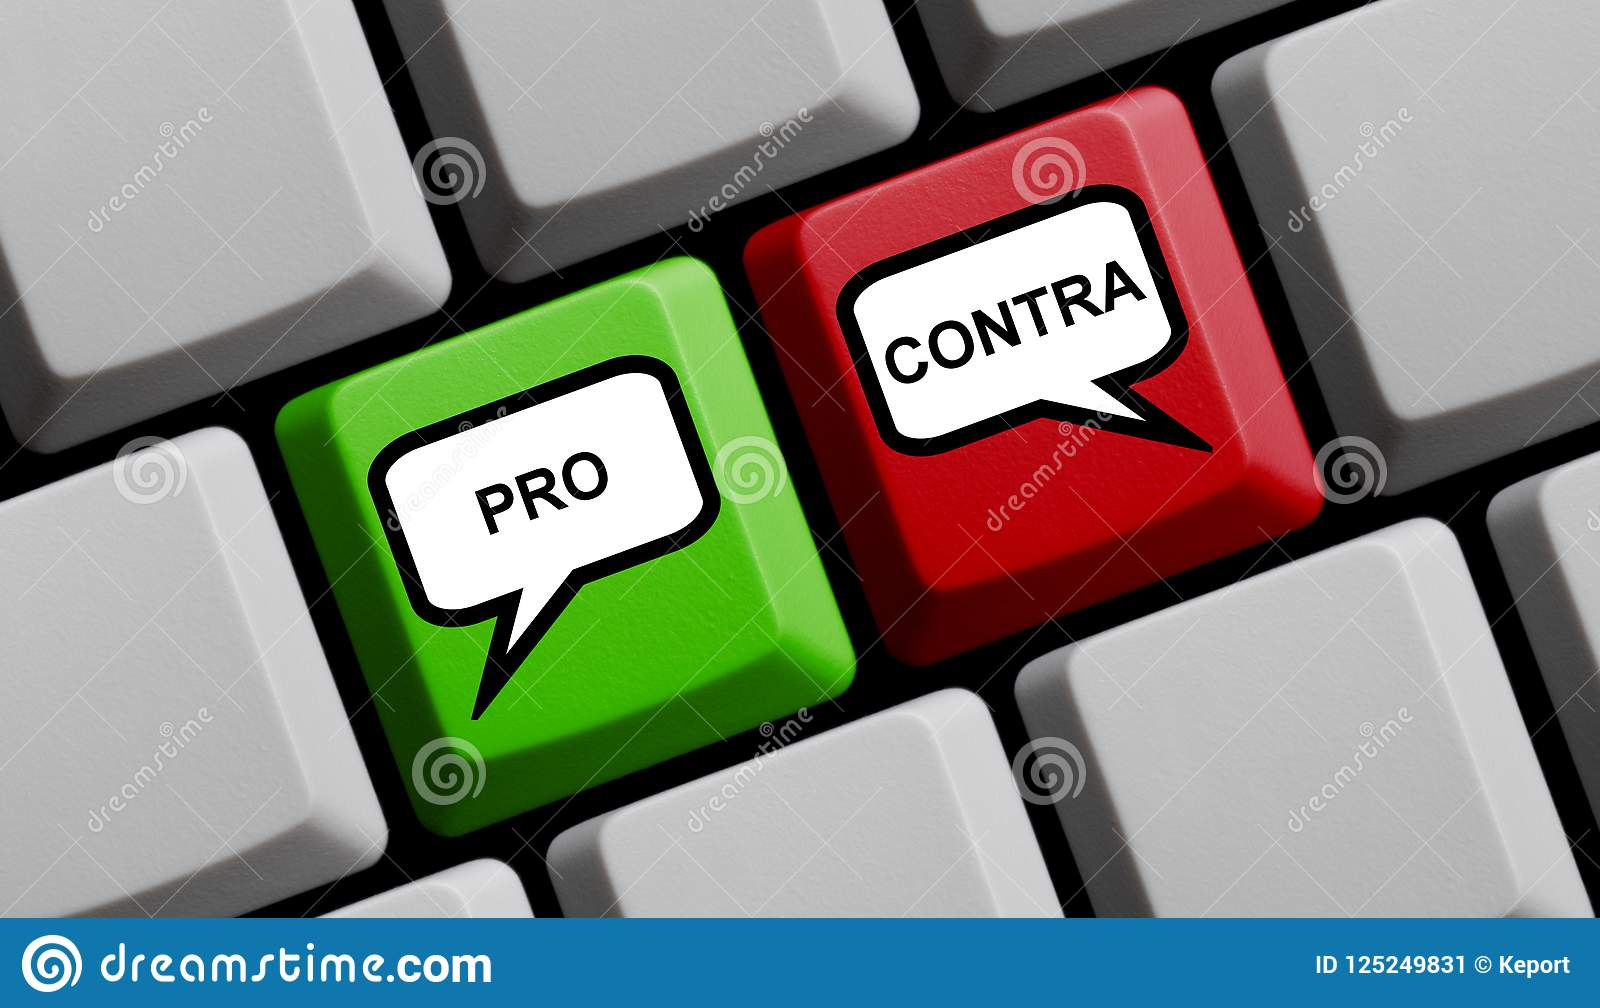 Pros And Cons German   Computer Keyboard Stock Image   Image of